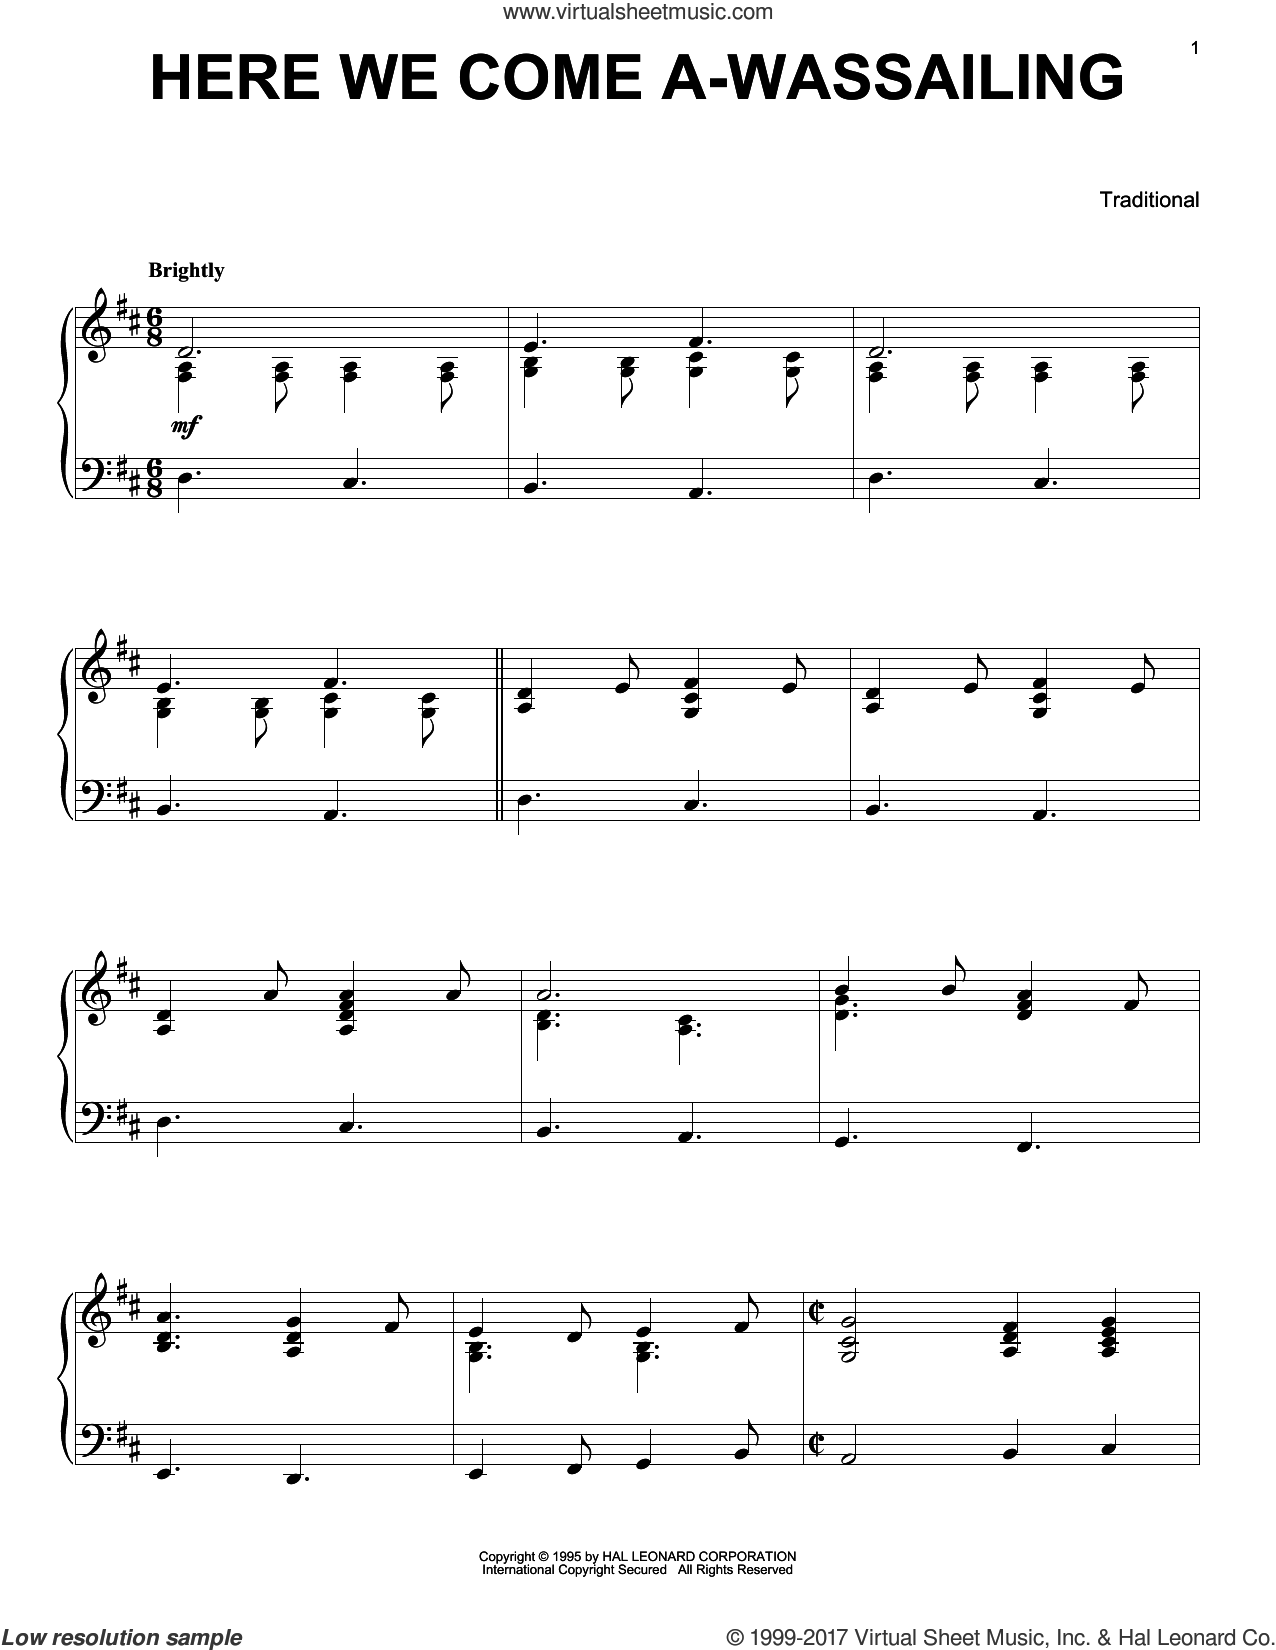 Here We Come A-Wassailing, (intermediate) sheet music for piano solo, intermediate skill level